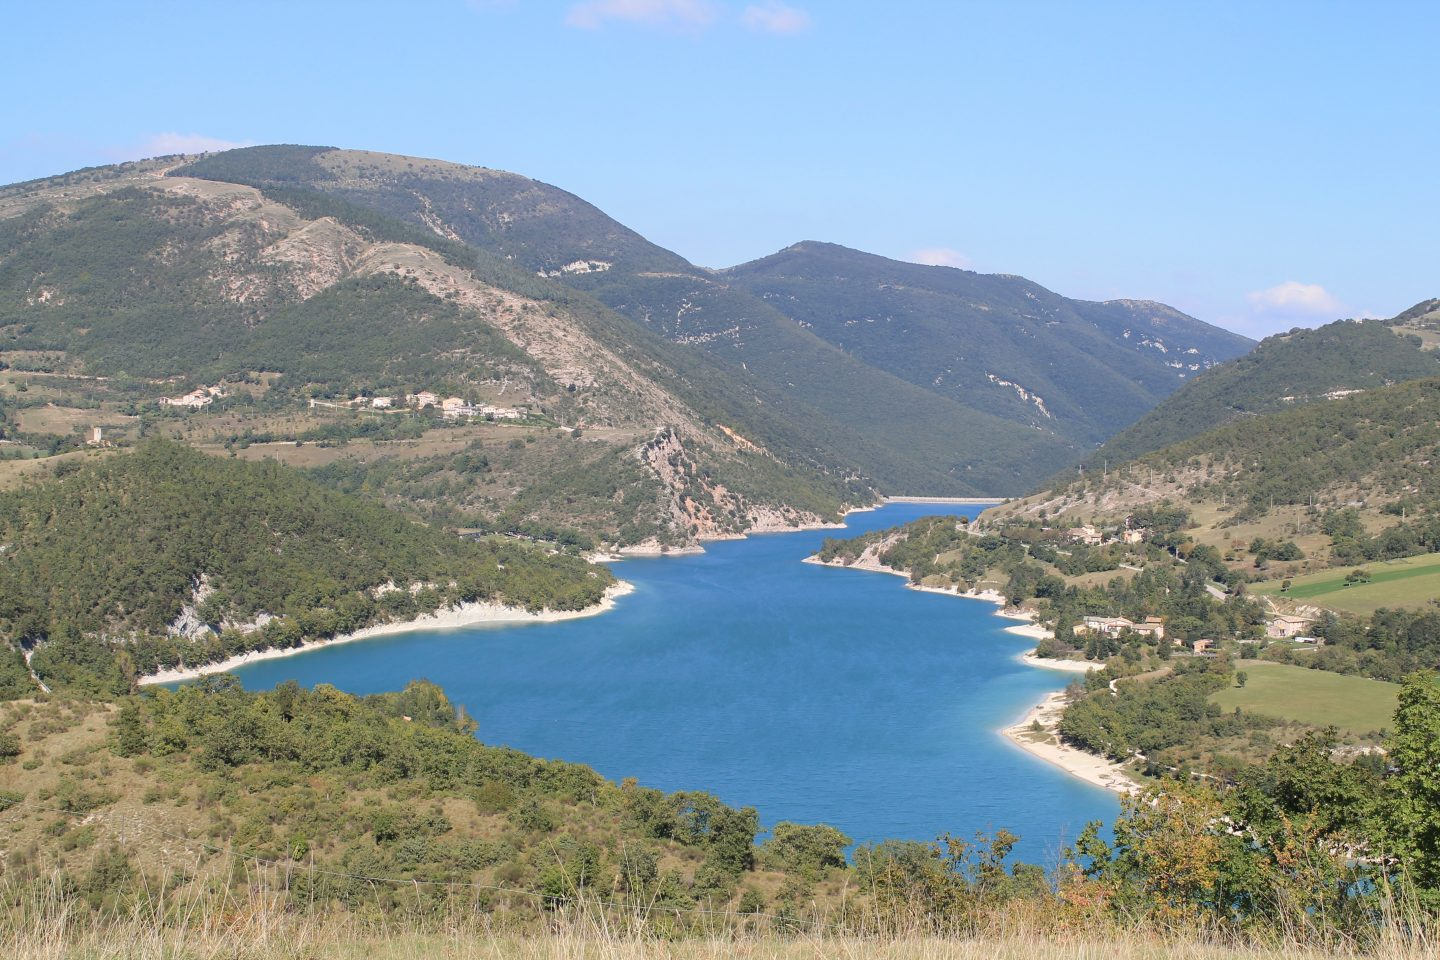 Lake Fiastra le marche italy, Italy driving holiday